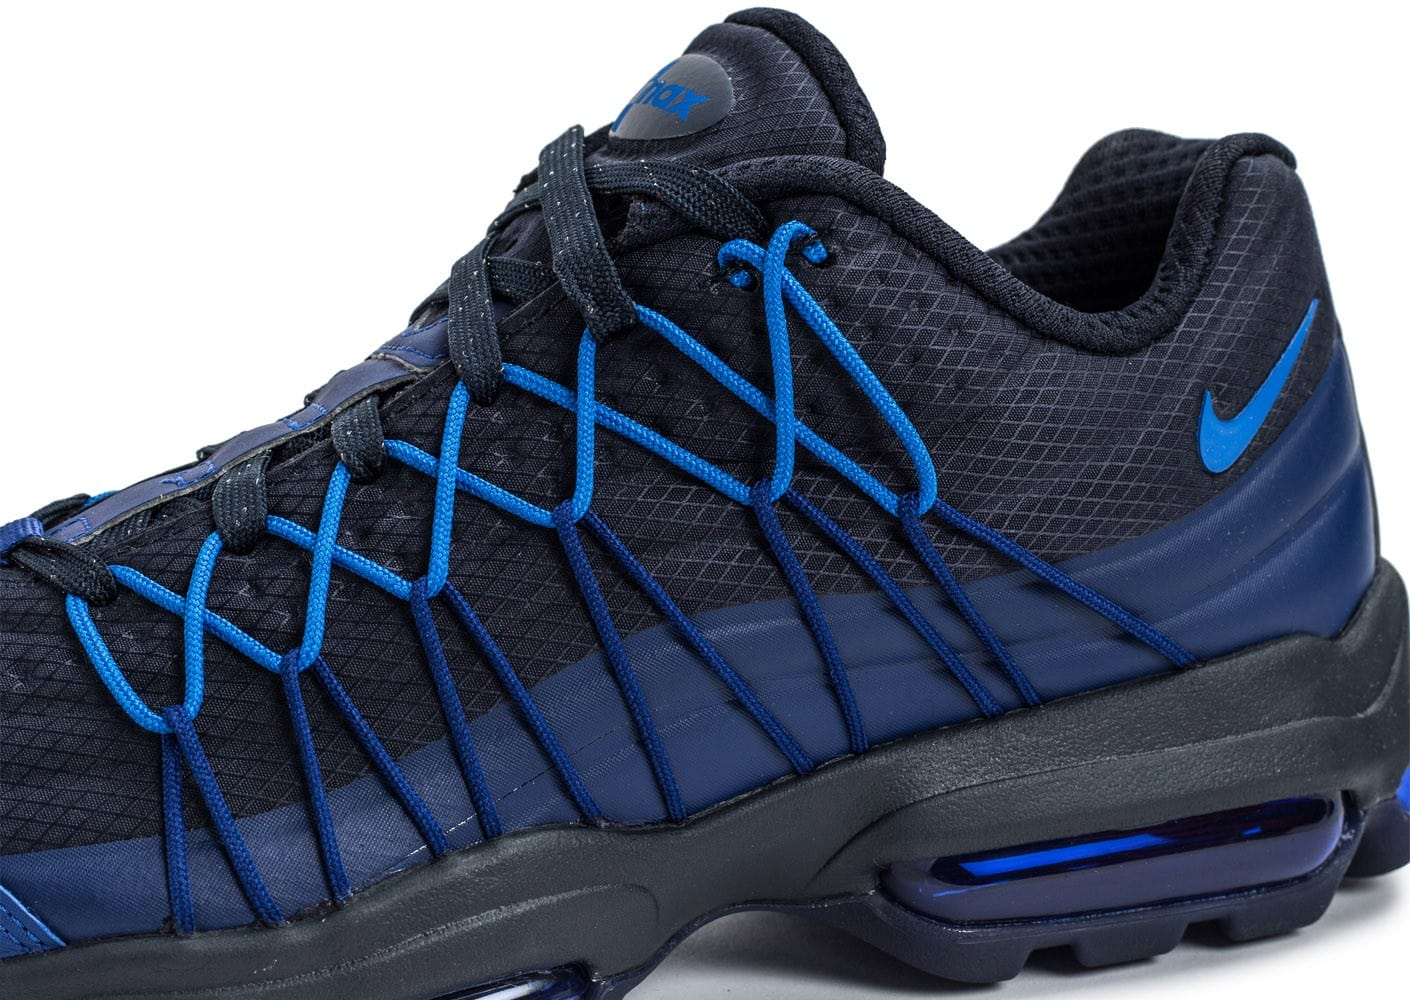 sneakers for cheap e48c7 3b7c6 ... chaussures nike air max 95 ultra se bleu marine vue details